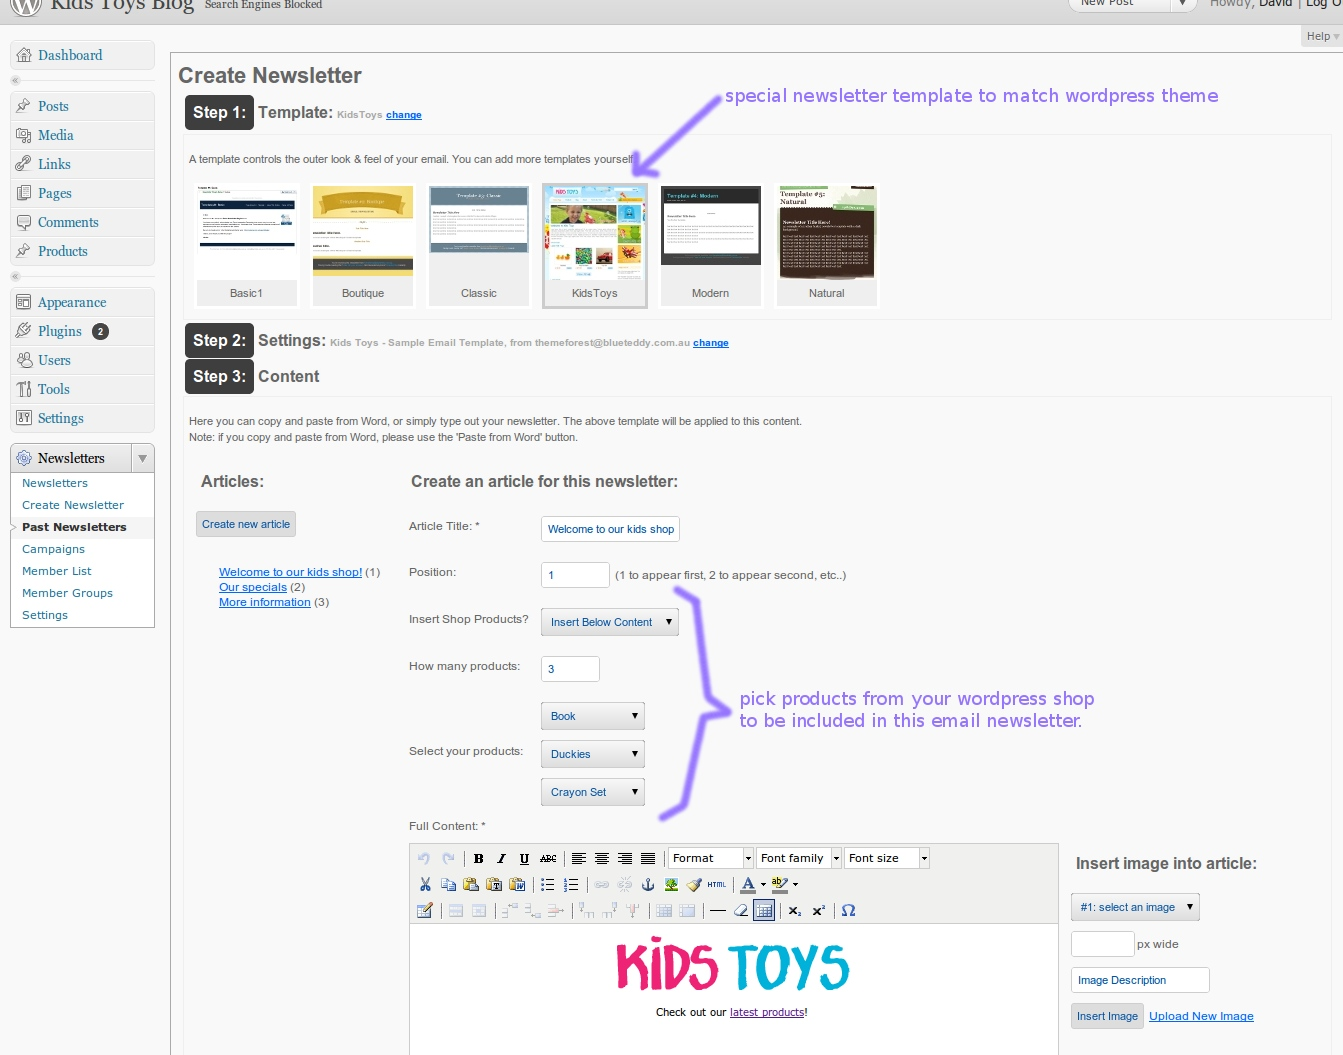 Kids Toys - WordPress Shop & Newsletter - Here is a screenshot of sending a newsletter out to all your customers, automatically including a few products from your shop!! WOW!